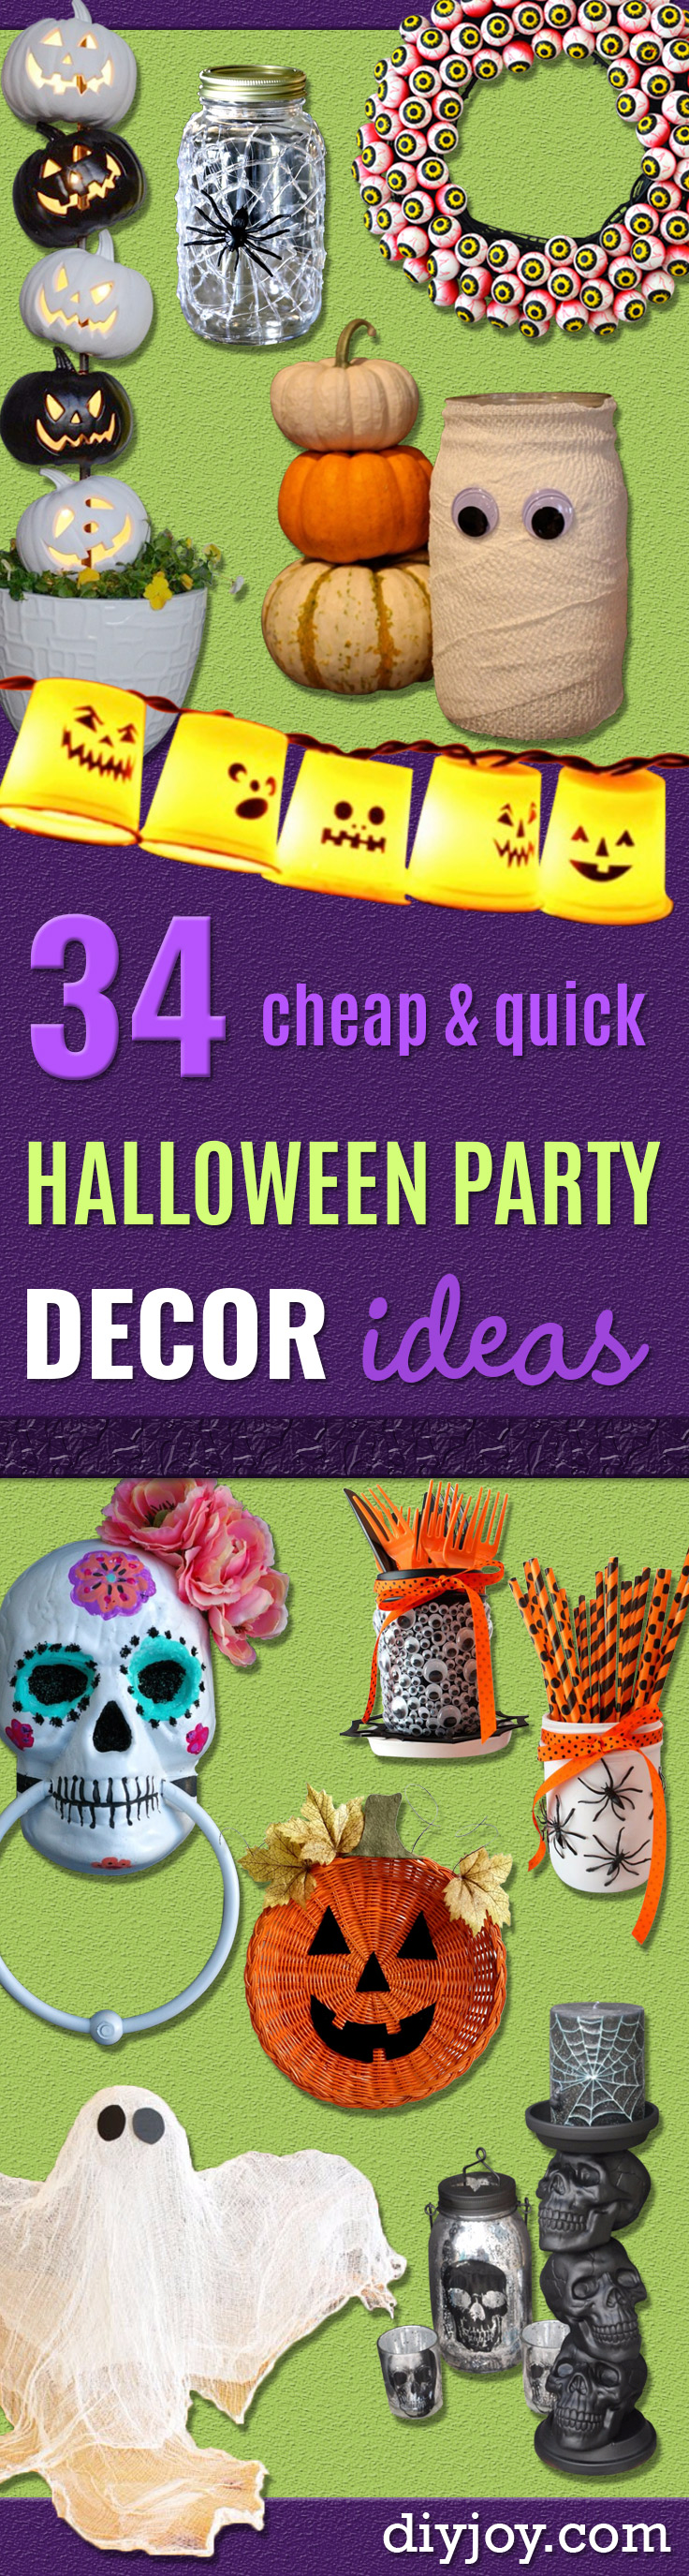 diy halloween decorations best easy cheap and quick halloween decor ideas and crafts for